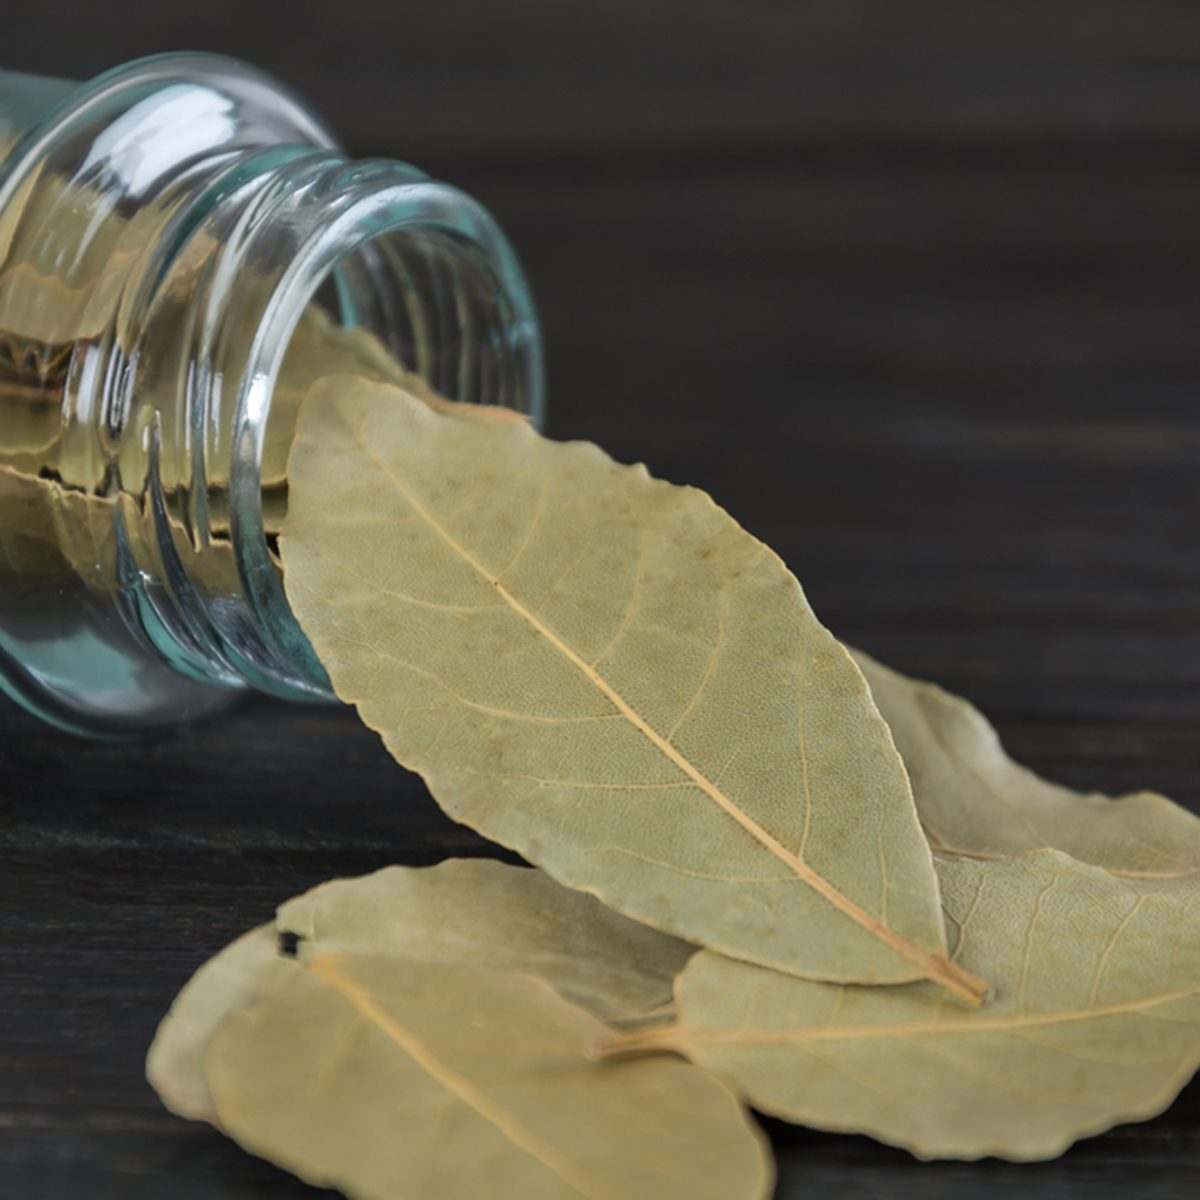 bay leaves in bottle on wood